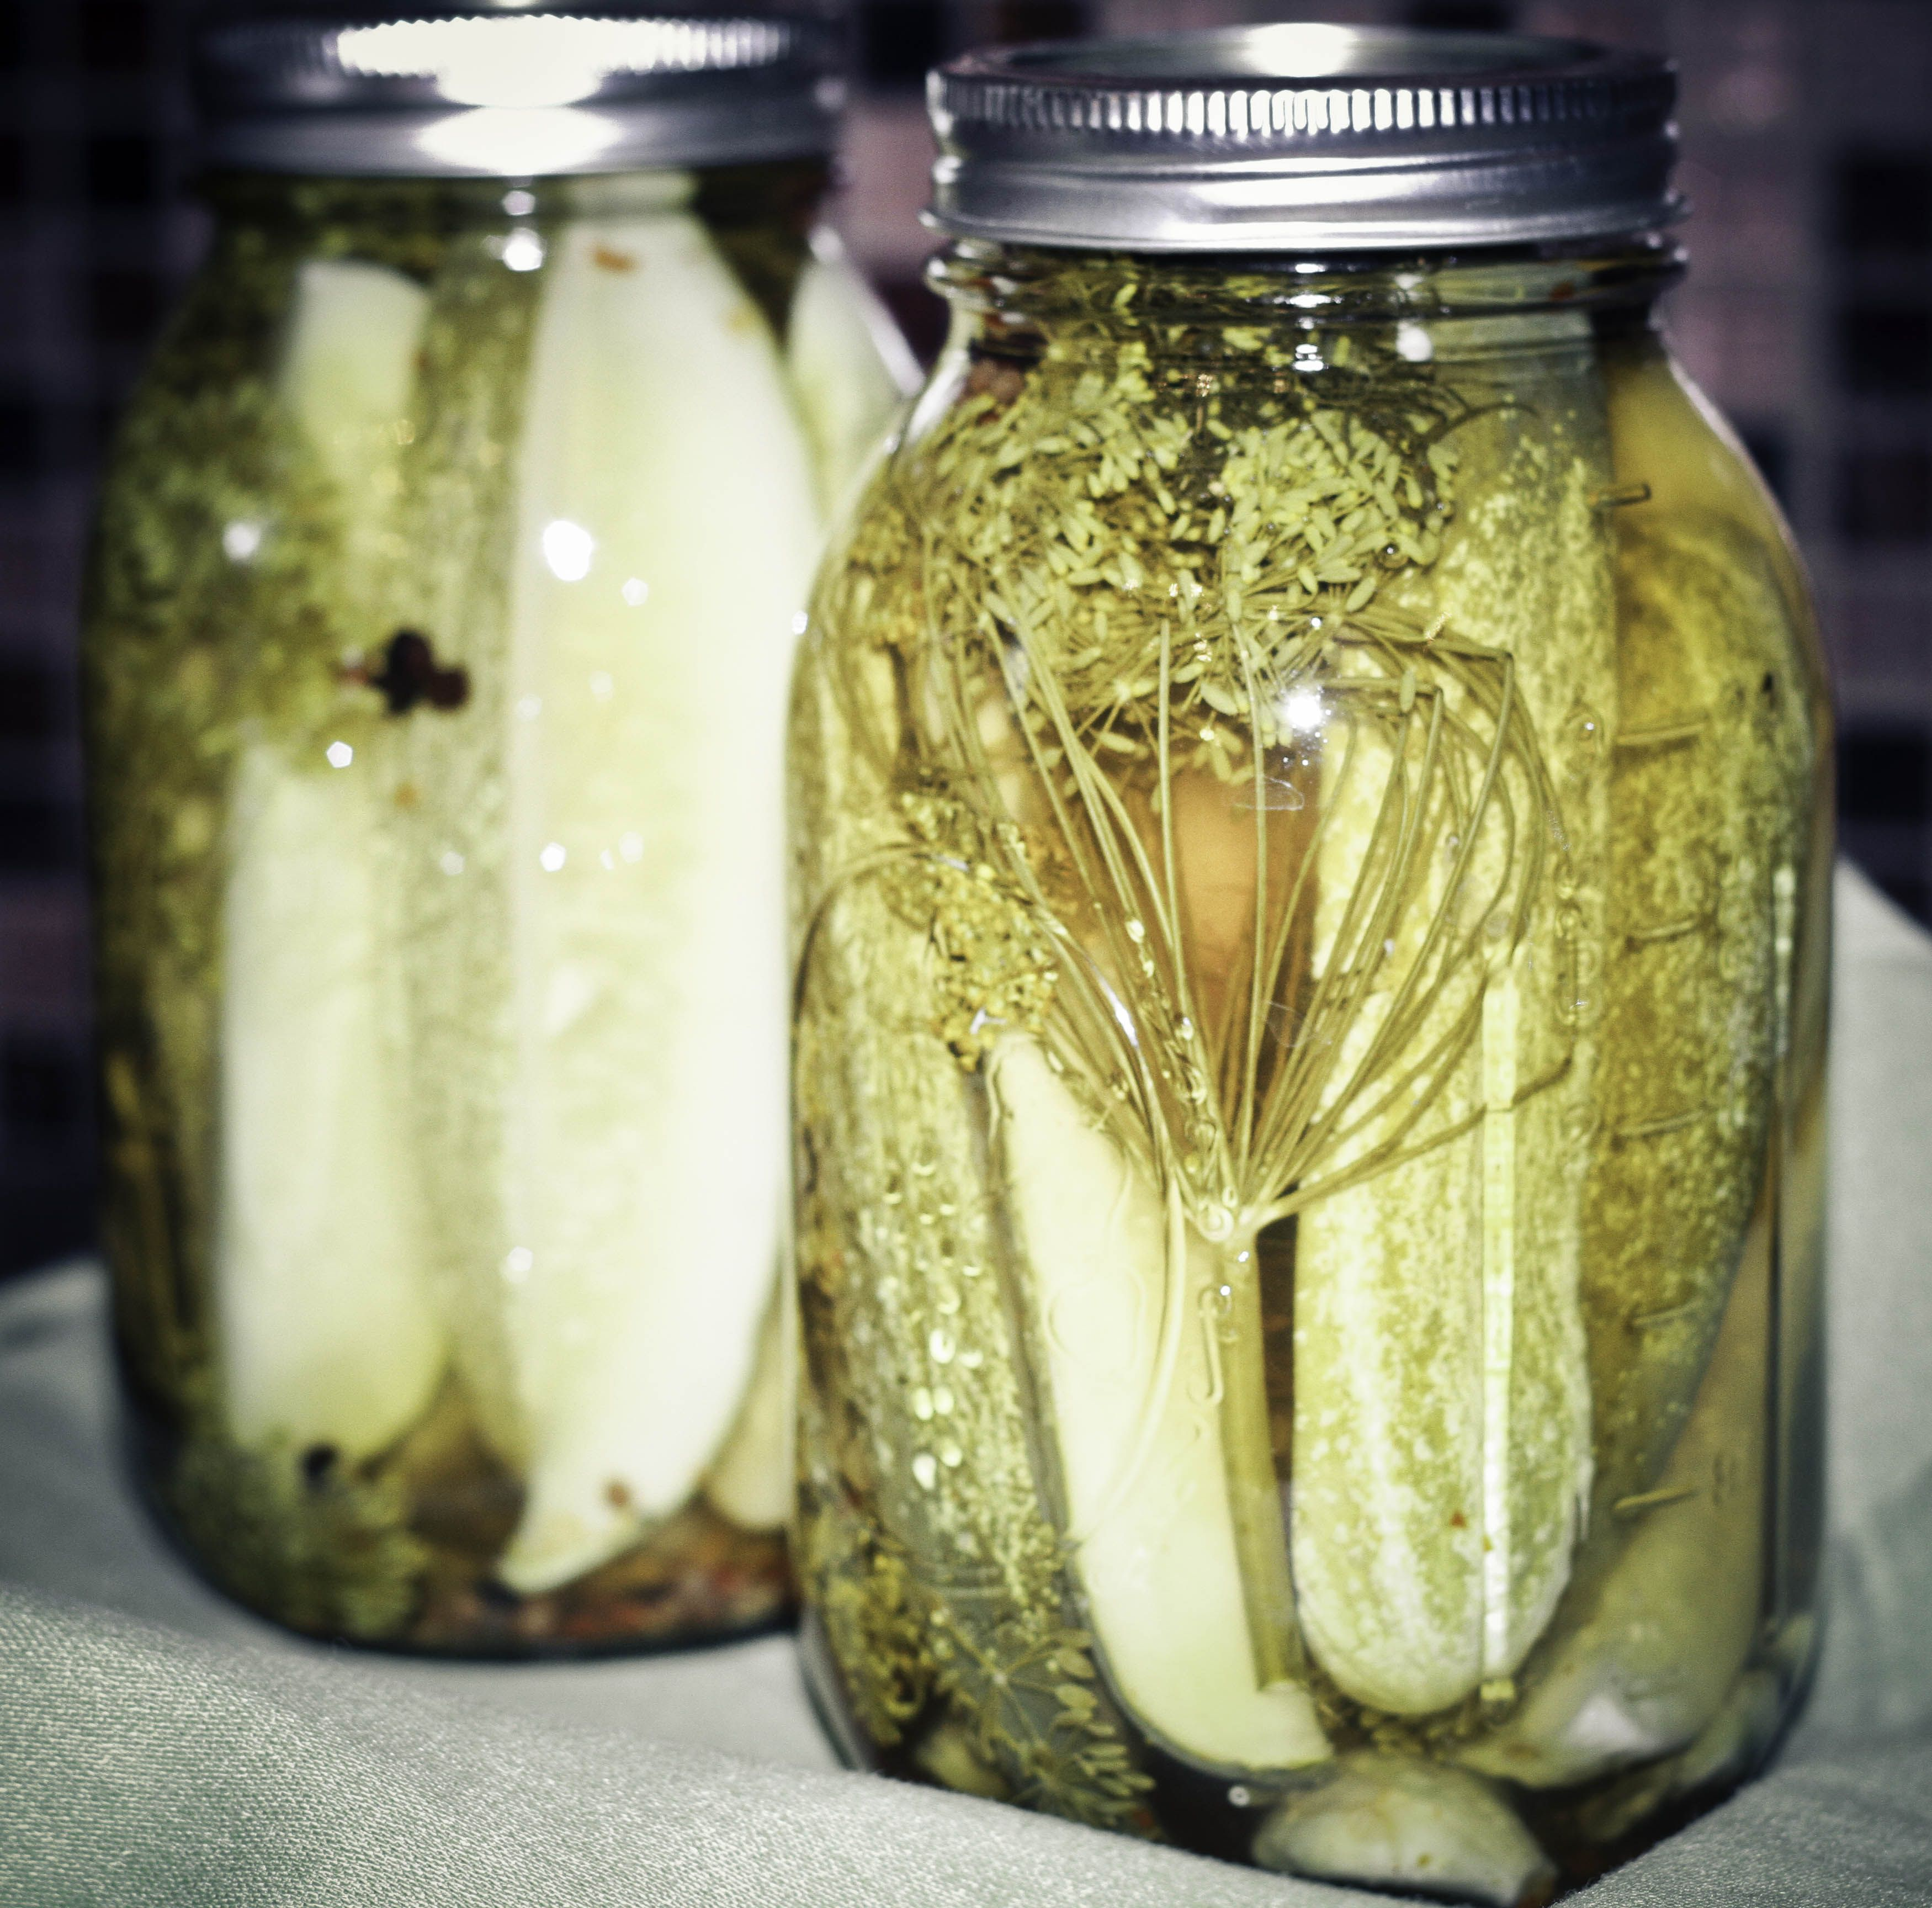 How to make sour kosher dill pickles